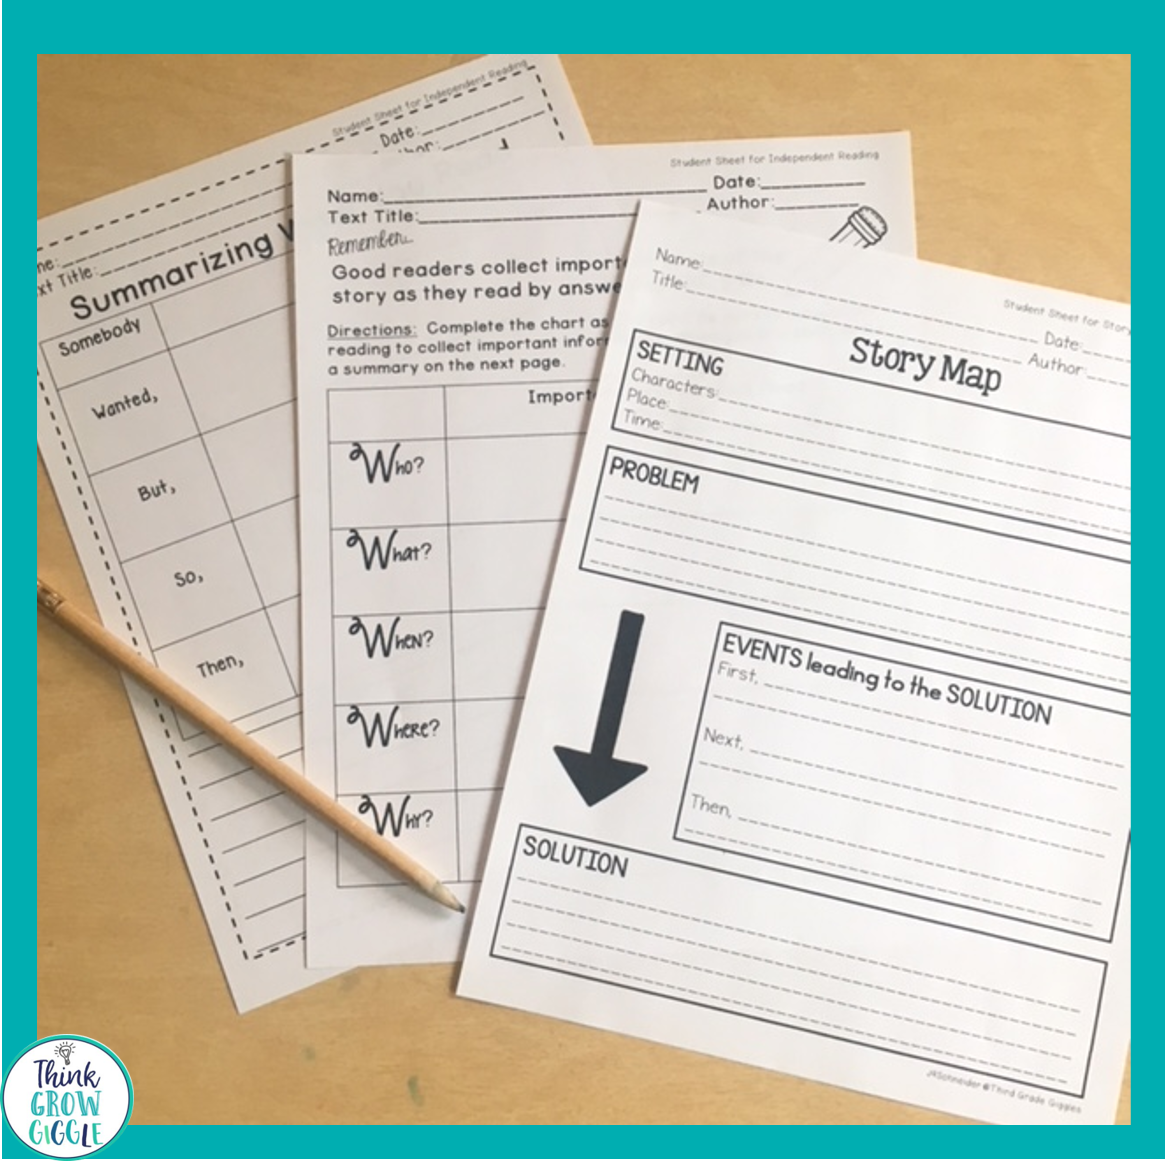 hight resolution of 4 Ways to Help Students Successfully Summarize - Think Grow Giggle